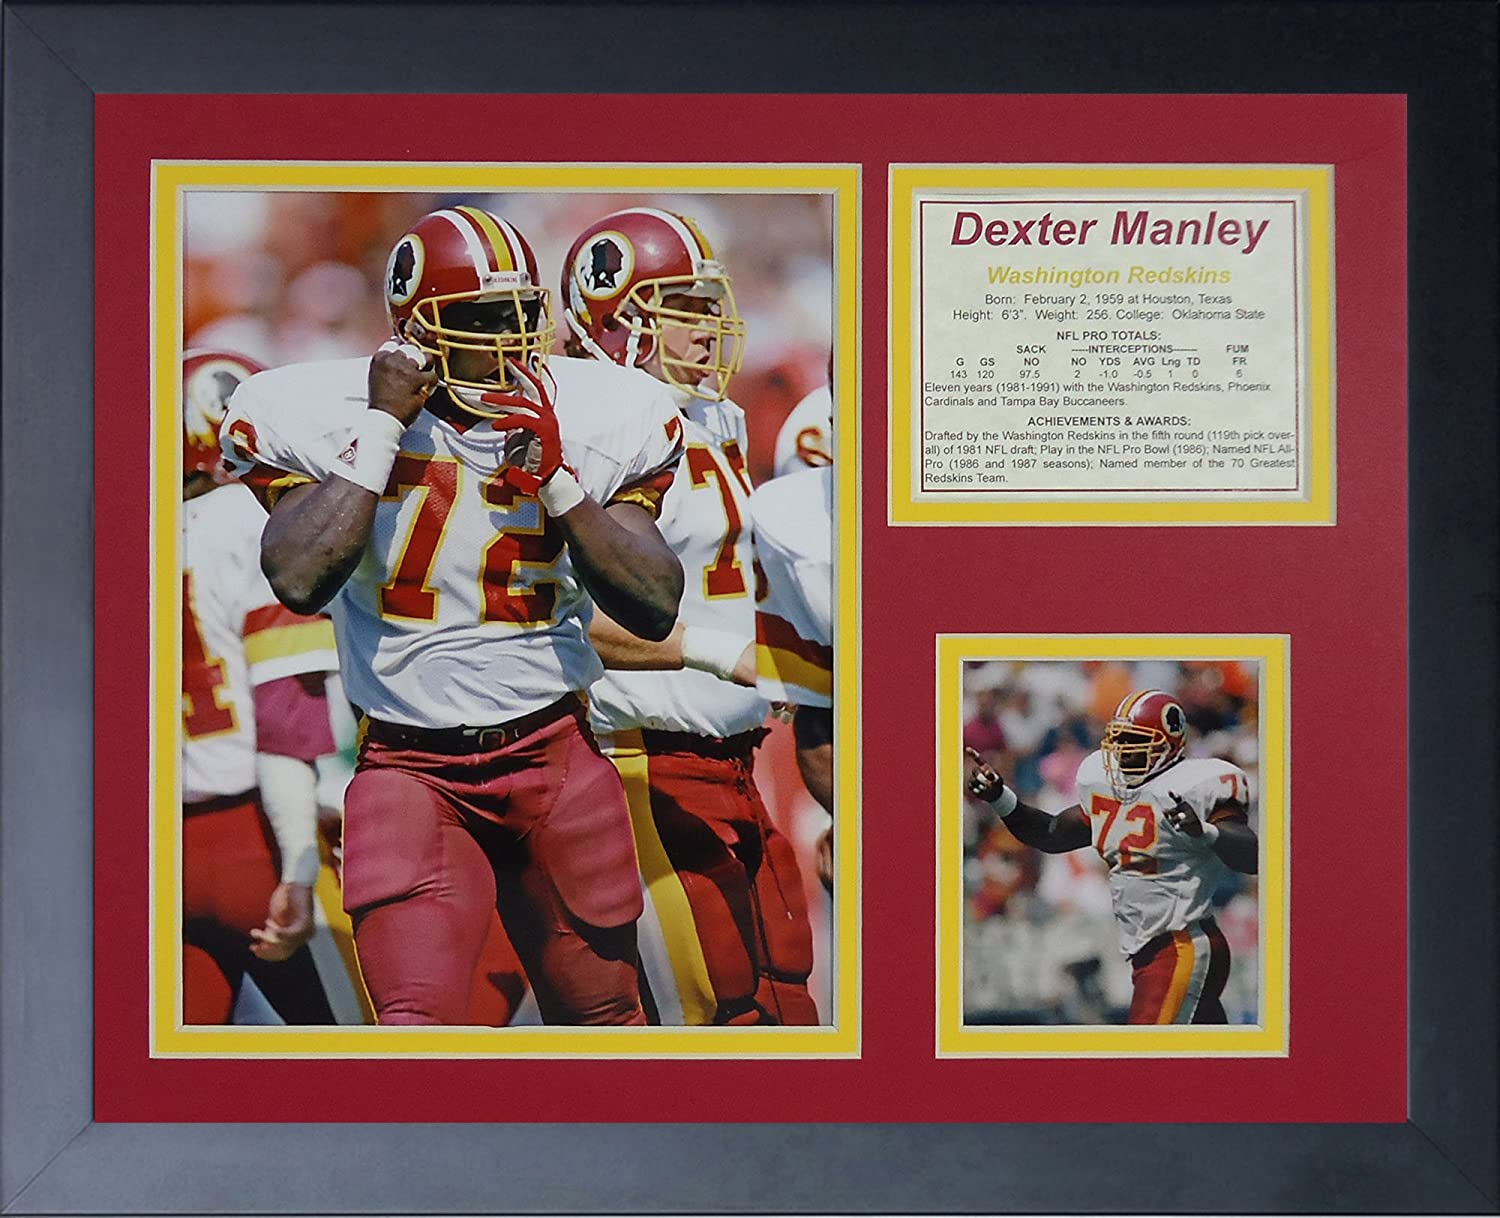 11 x 14-Inch Legends Never Die Dexter Manley Framed Photo Collage